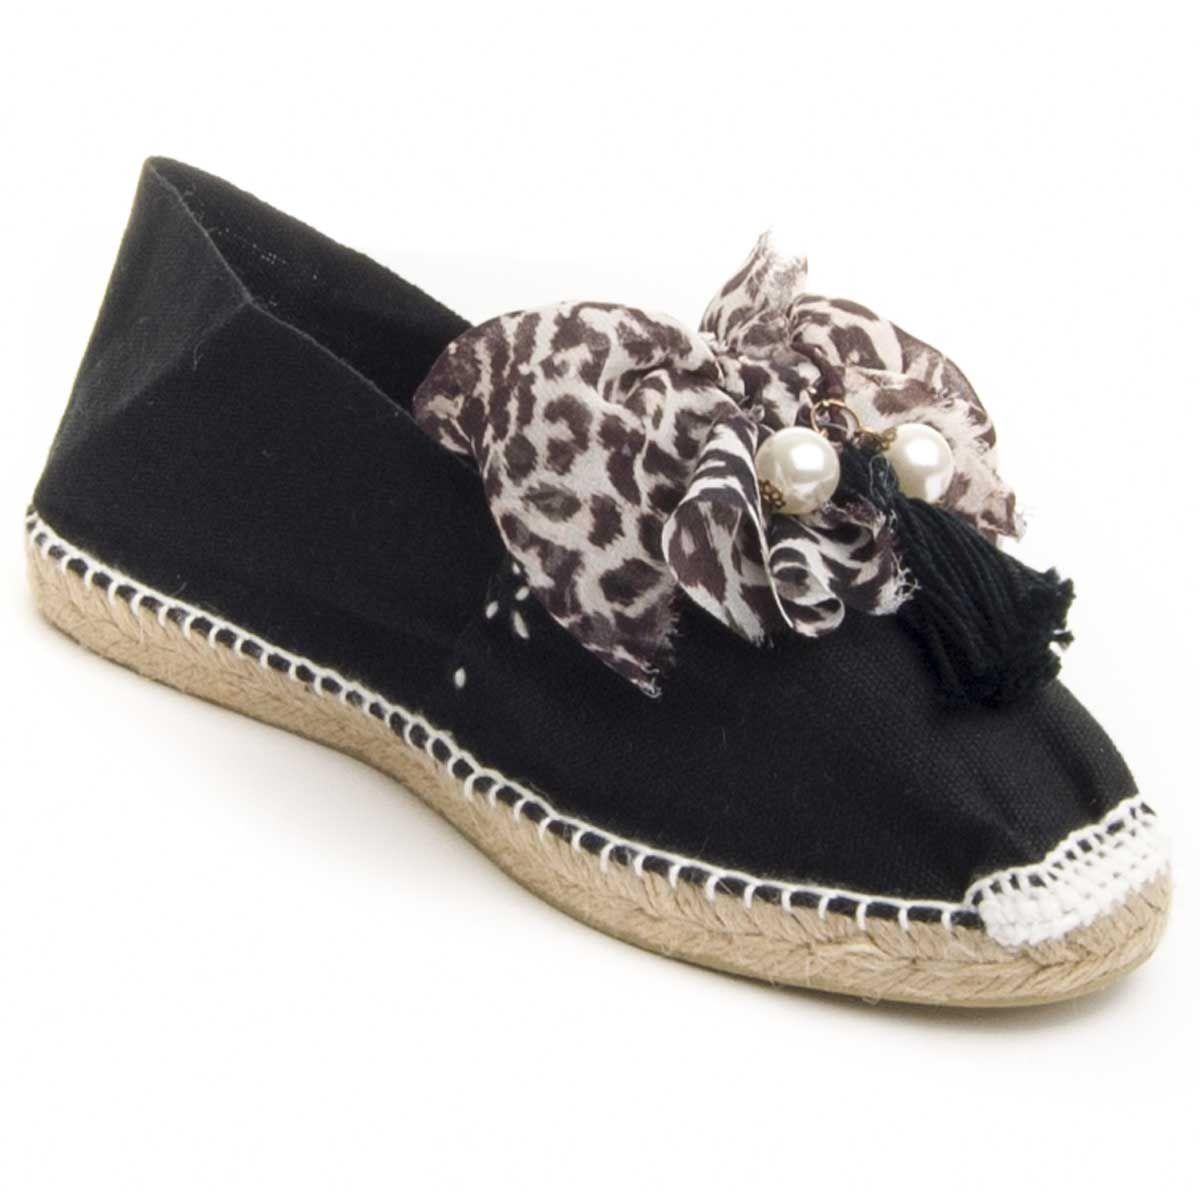 Maria Graor Bow Front Espadrille in Black